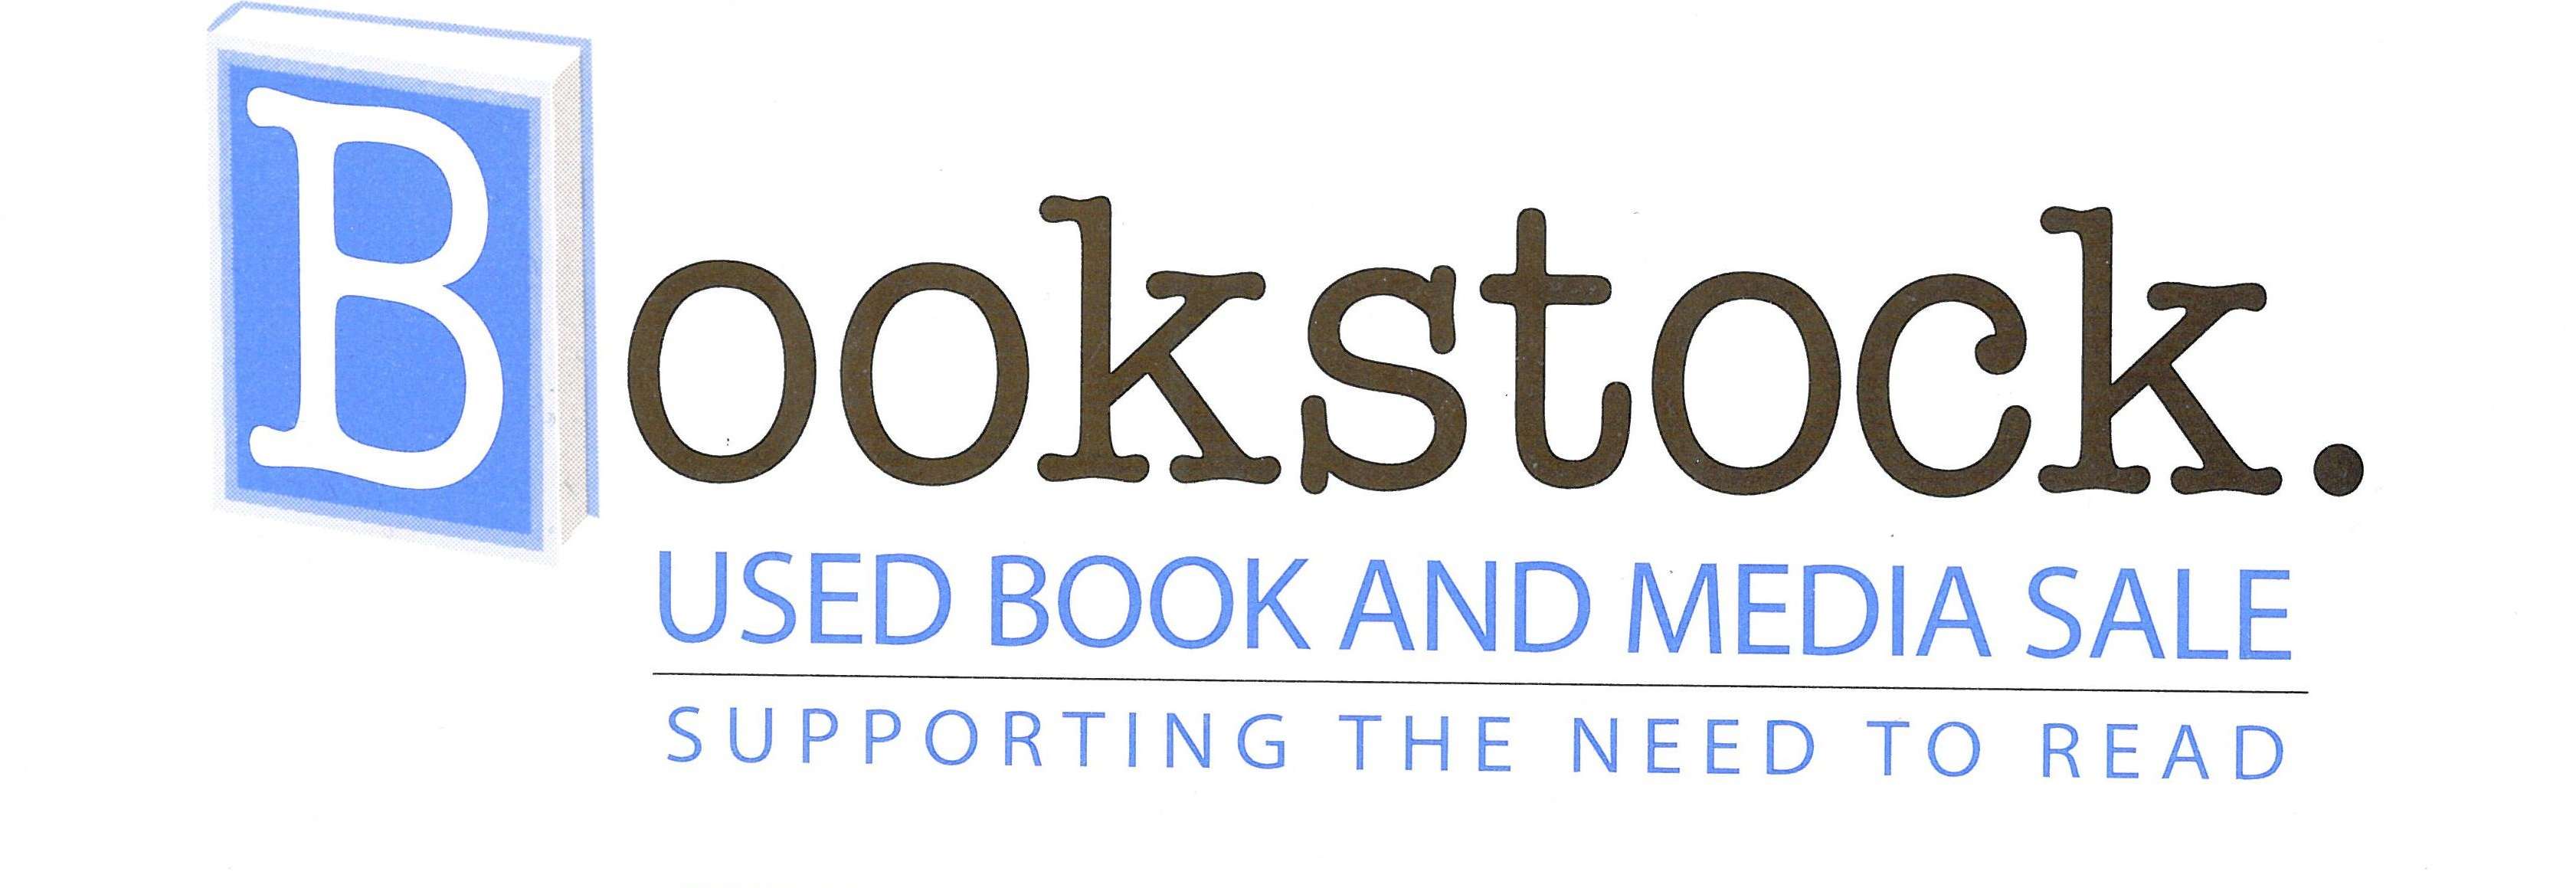 bookstock, used books, donations NCJW Michigan